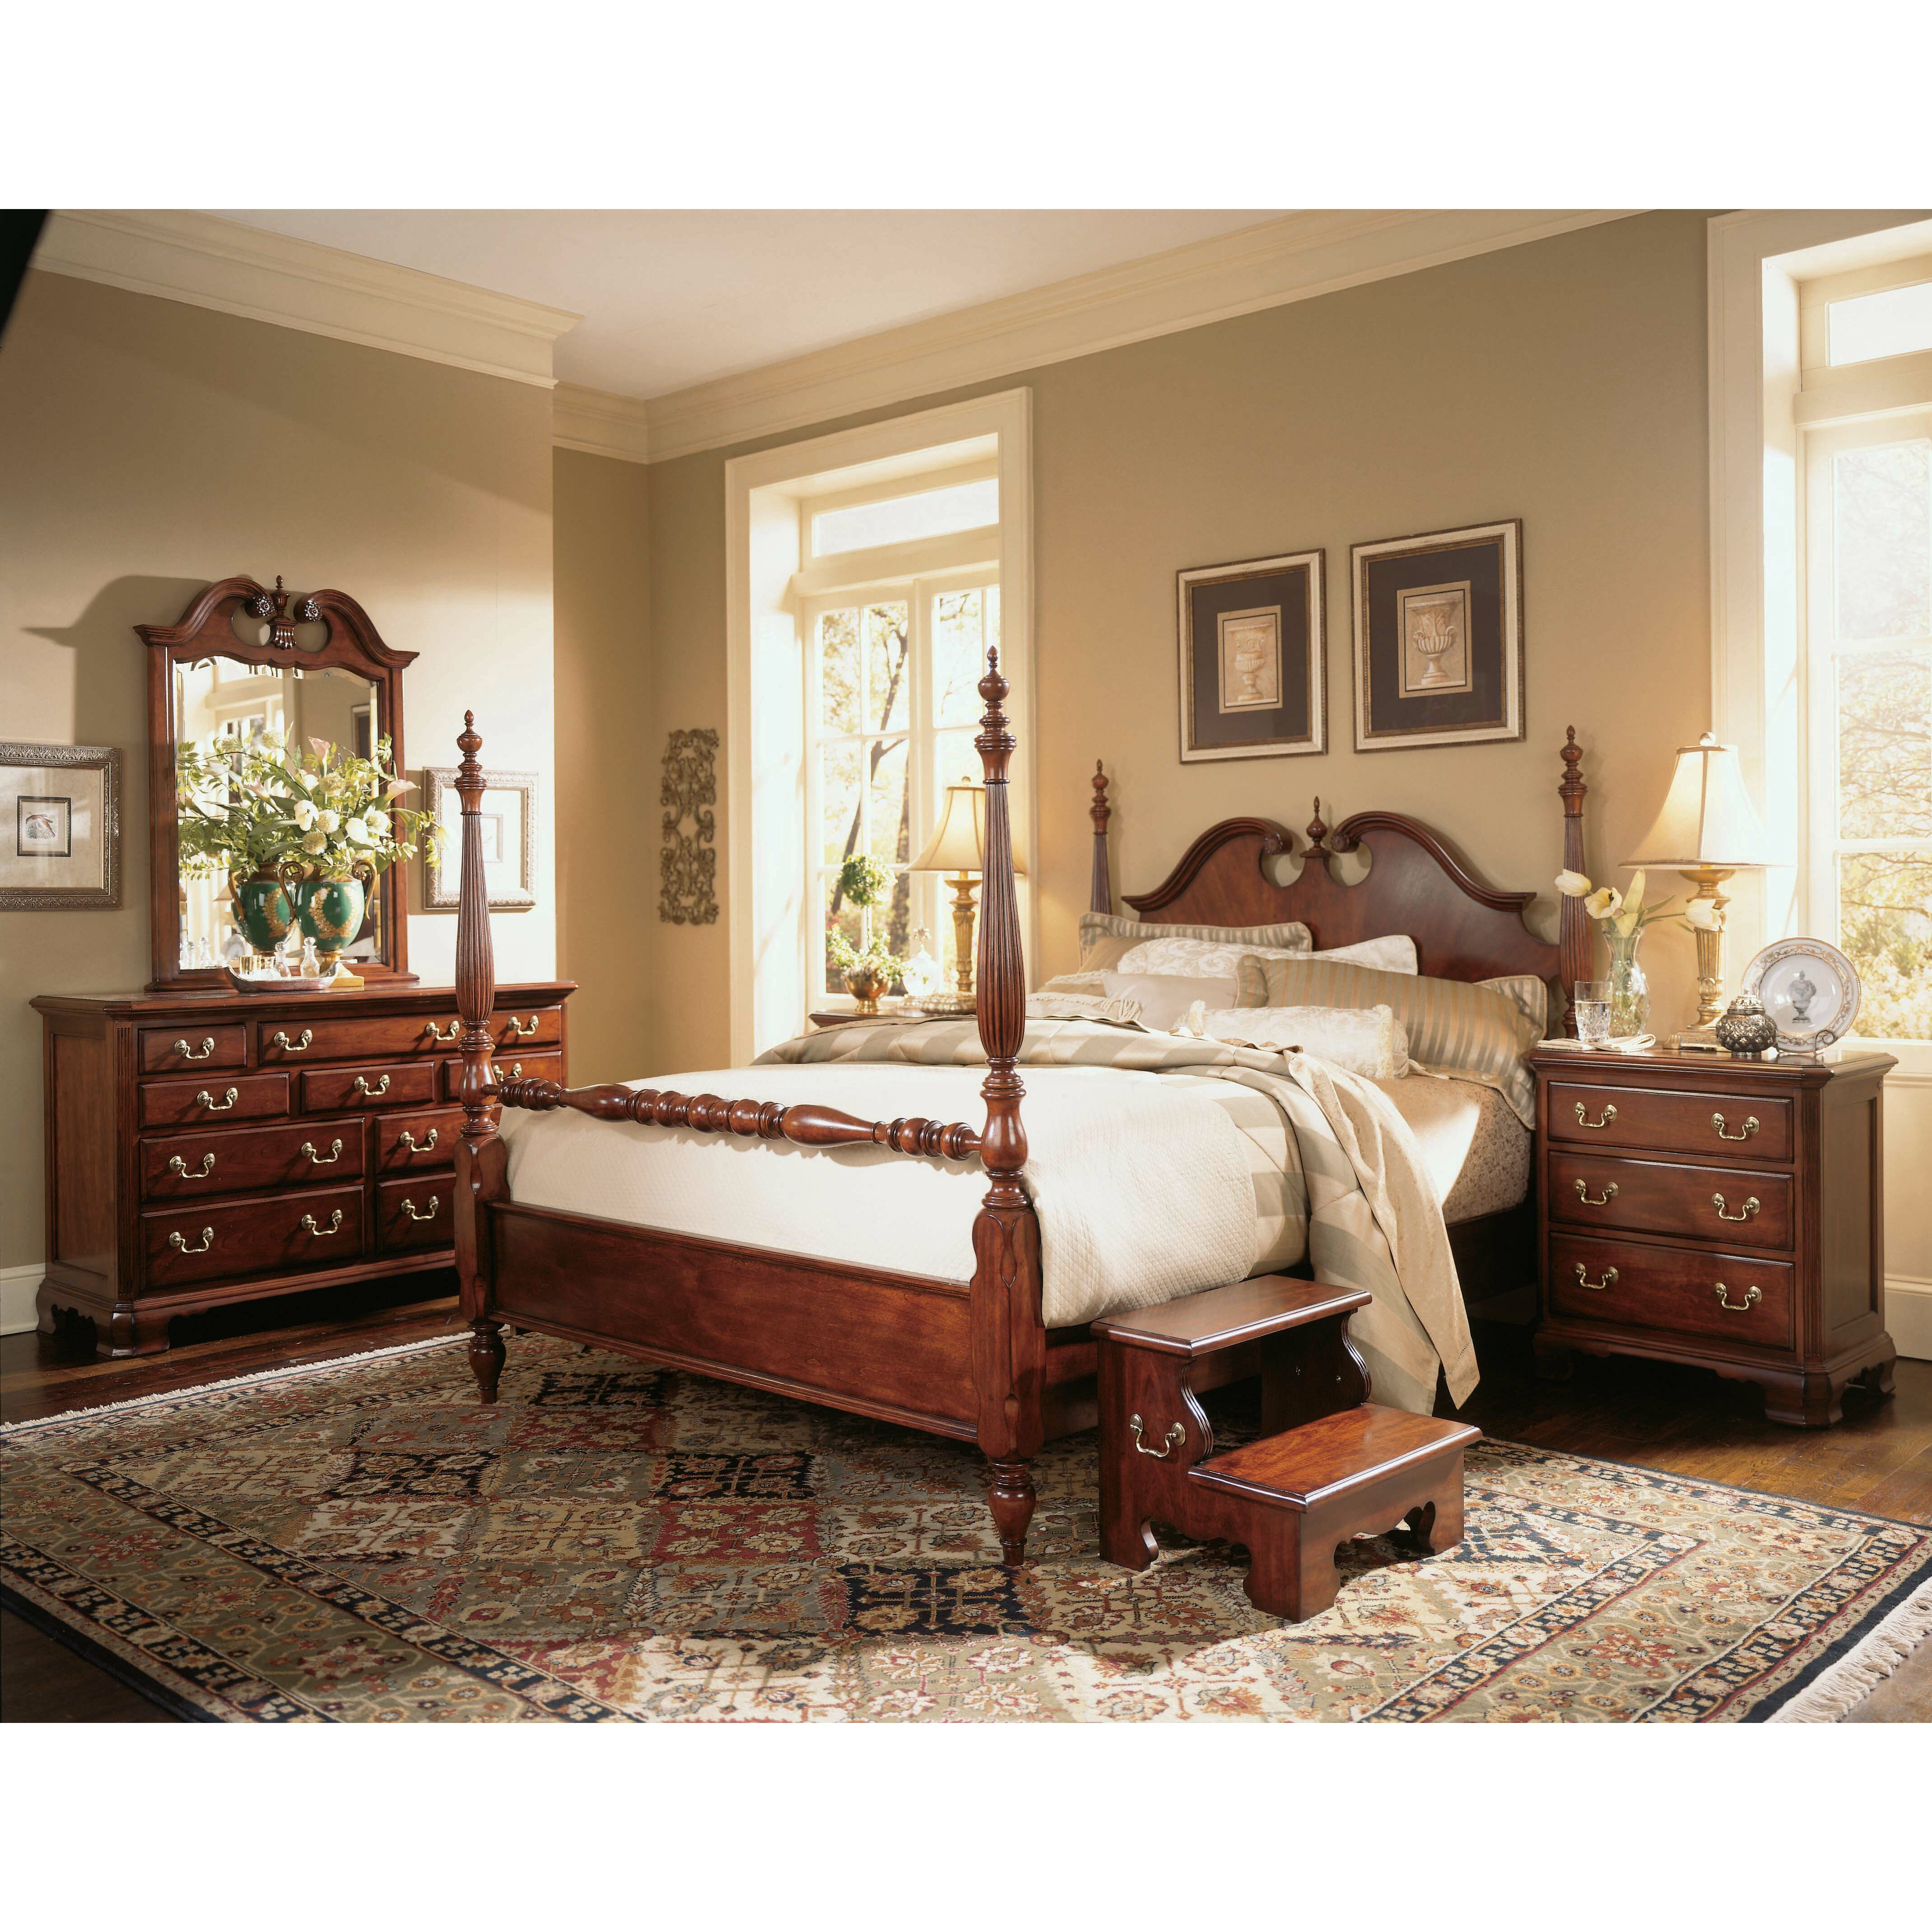 American drew cherry grove four poster customizable for Bed frame and dresser set